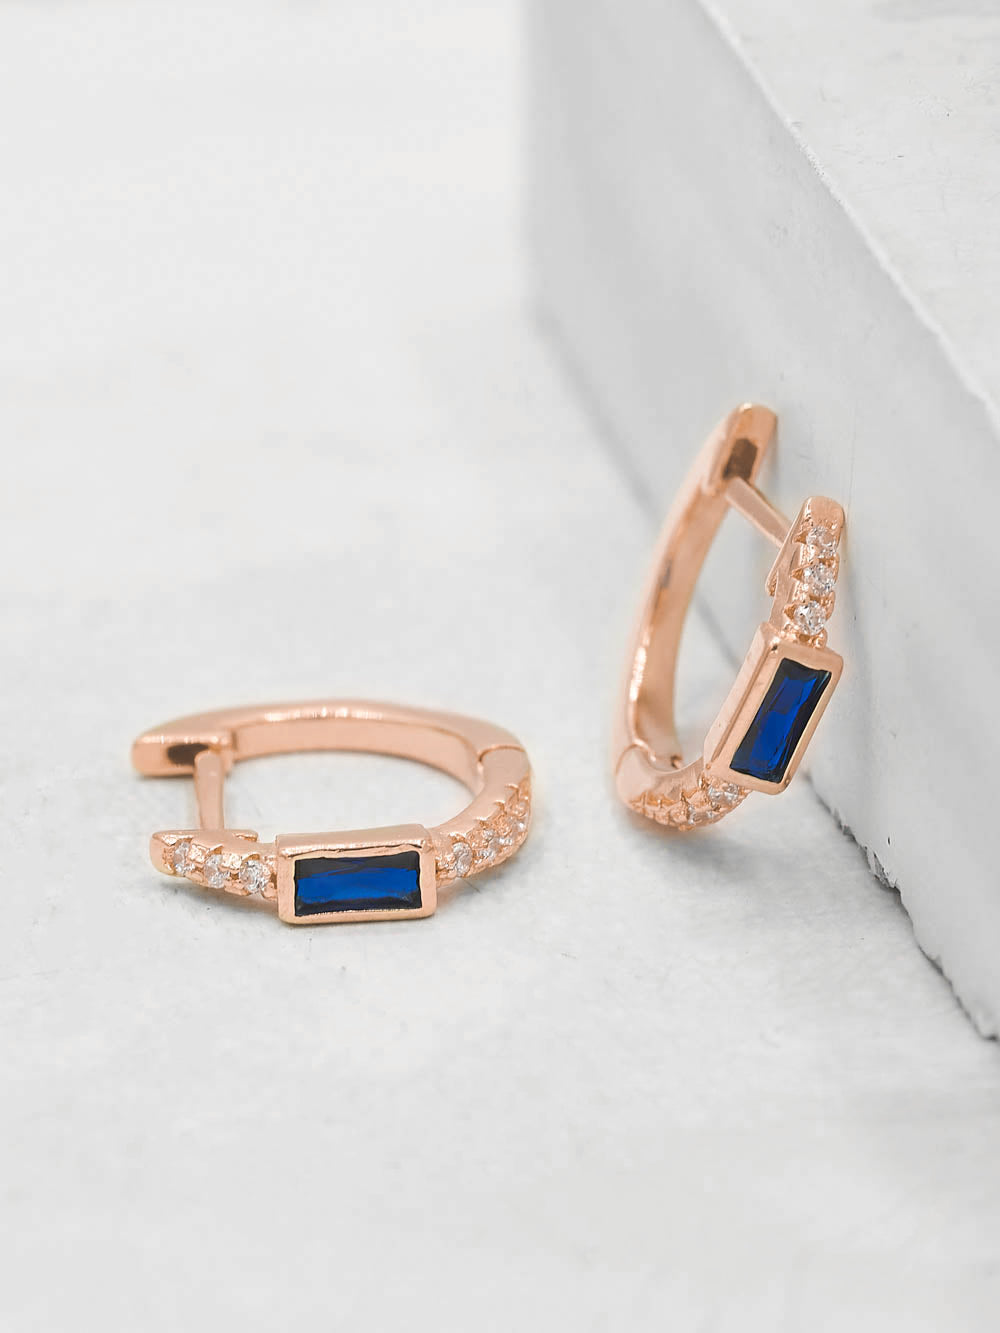 Rose gold plated Blue sapphire baguette Huggie Earrings by The Faint Hearted Jewelry